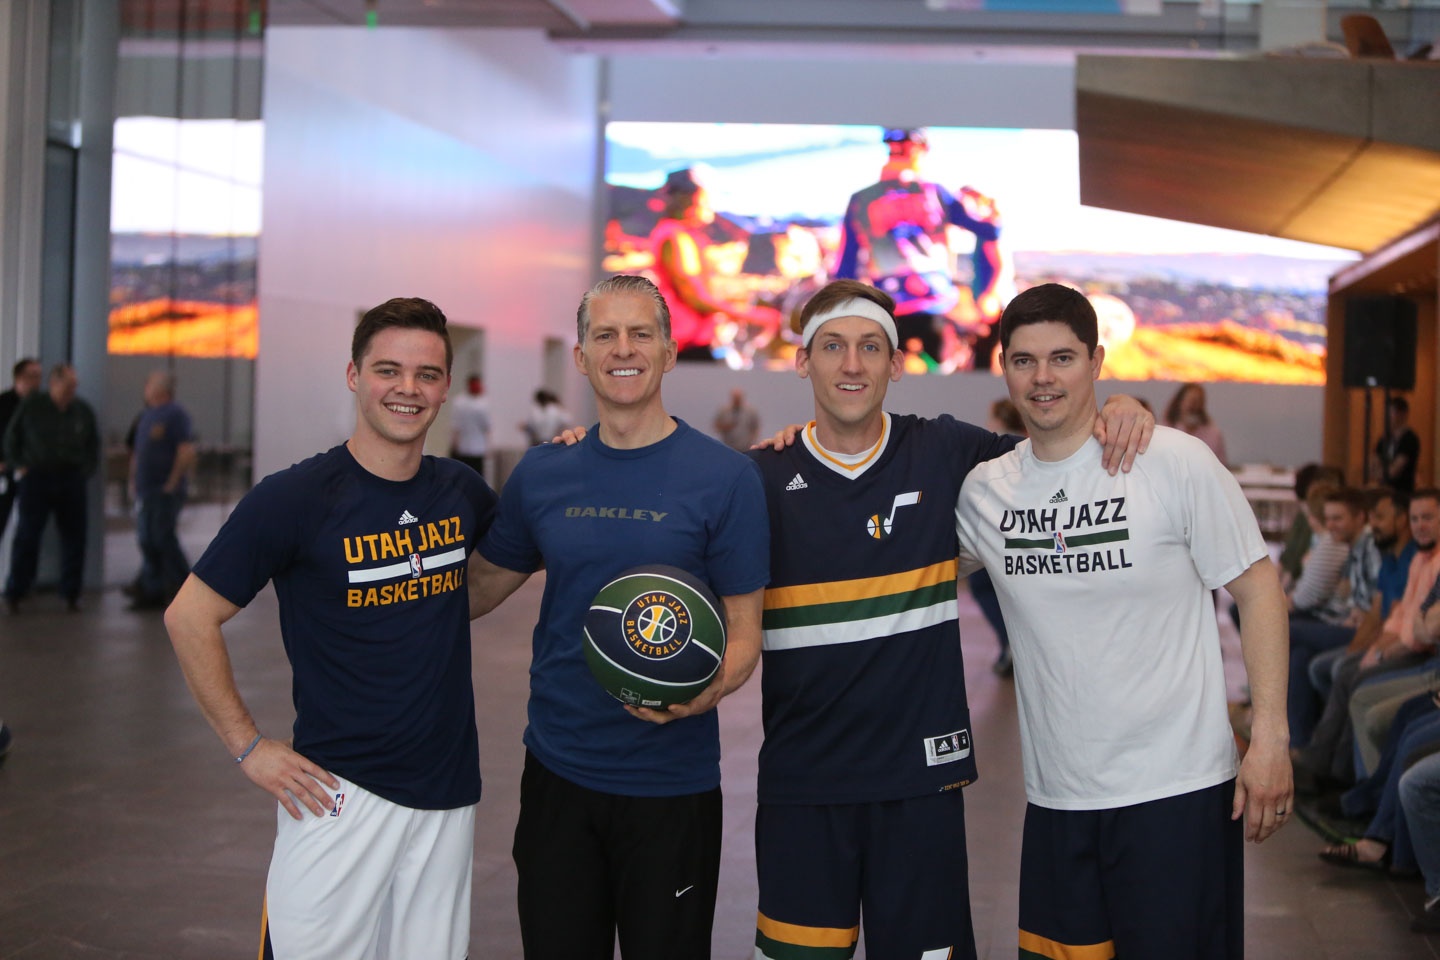 Utah Jazz Dunk Team visits Nu Skin